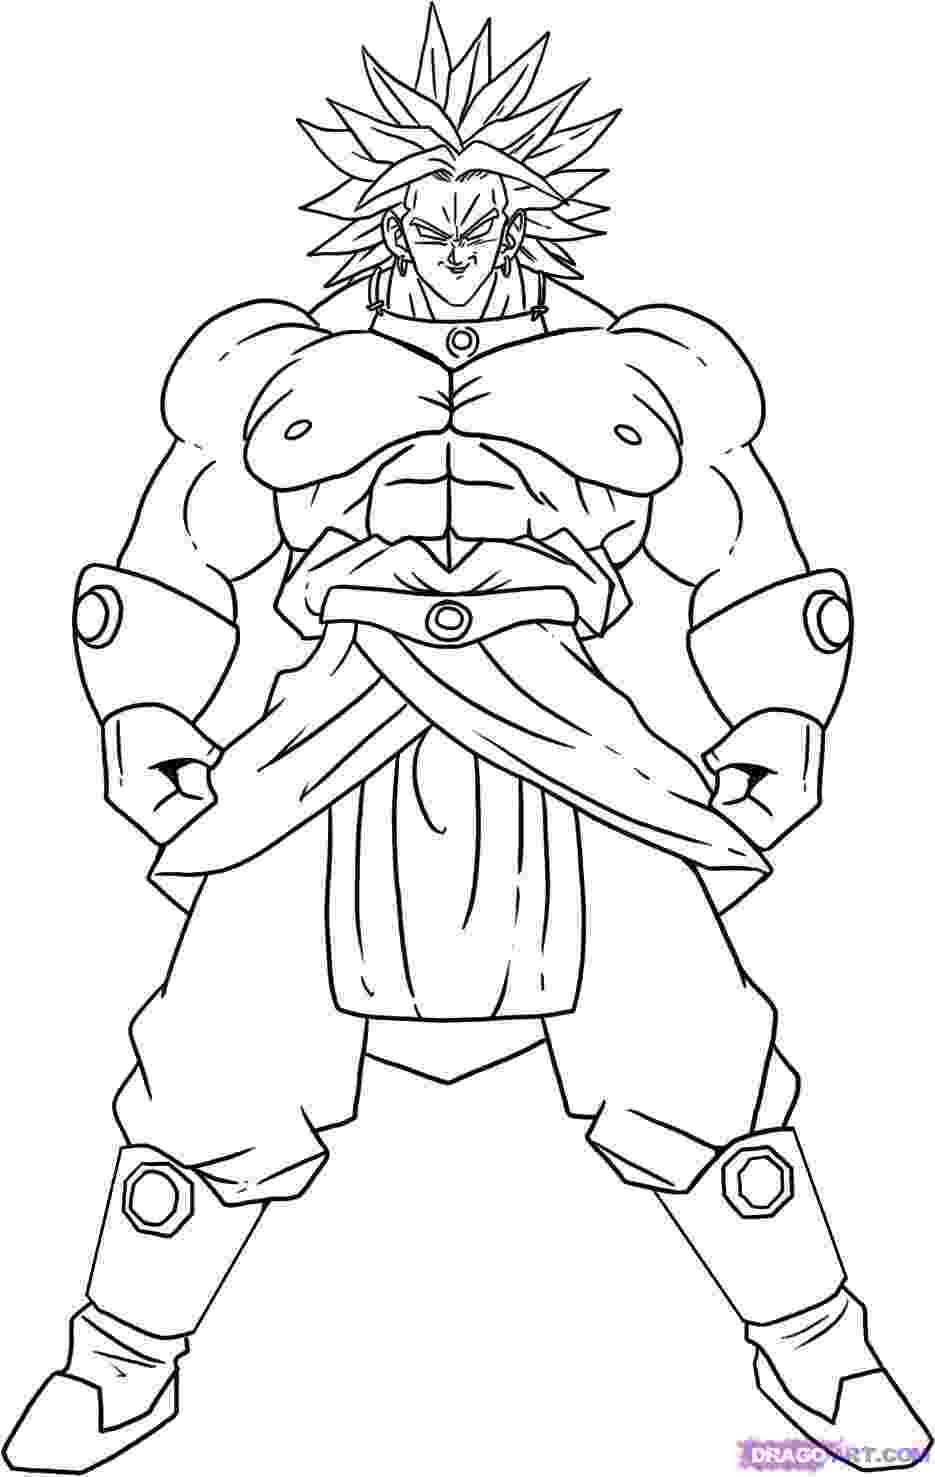 dragon ball coloring pages free printable dragon ball z coloring pages for kids ball dragon pages coloring